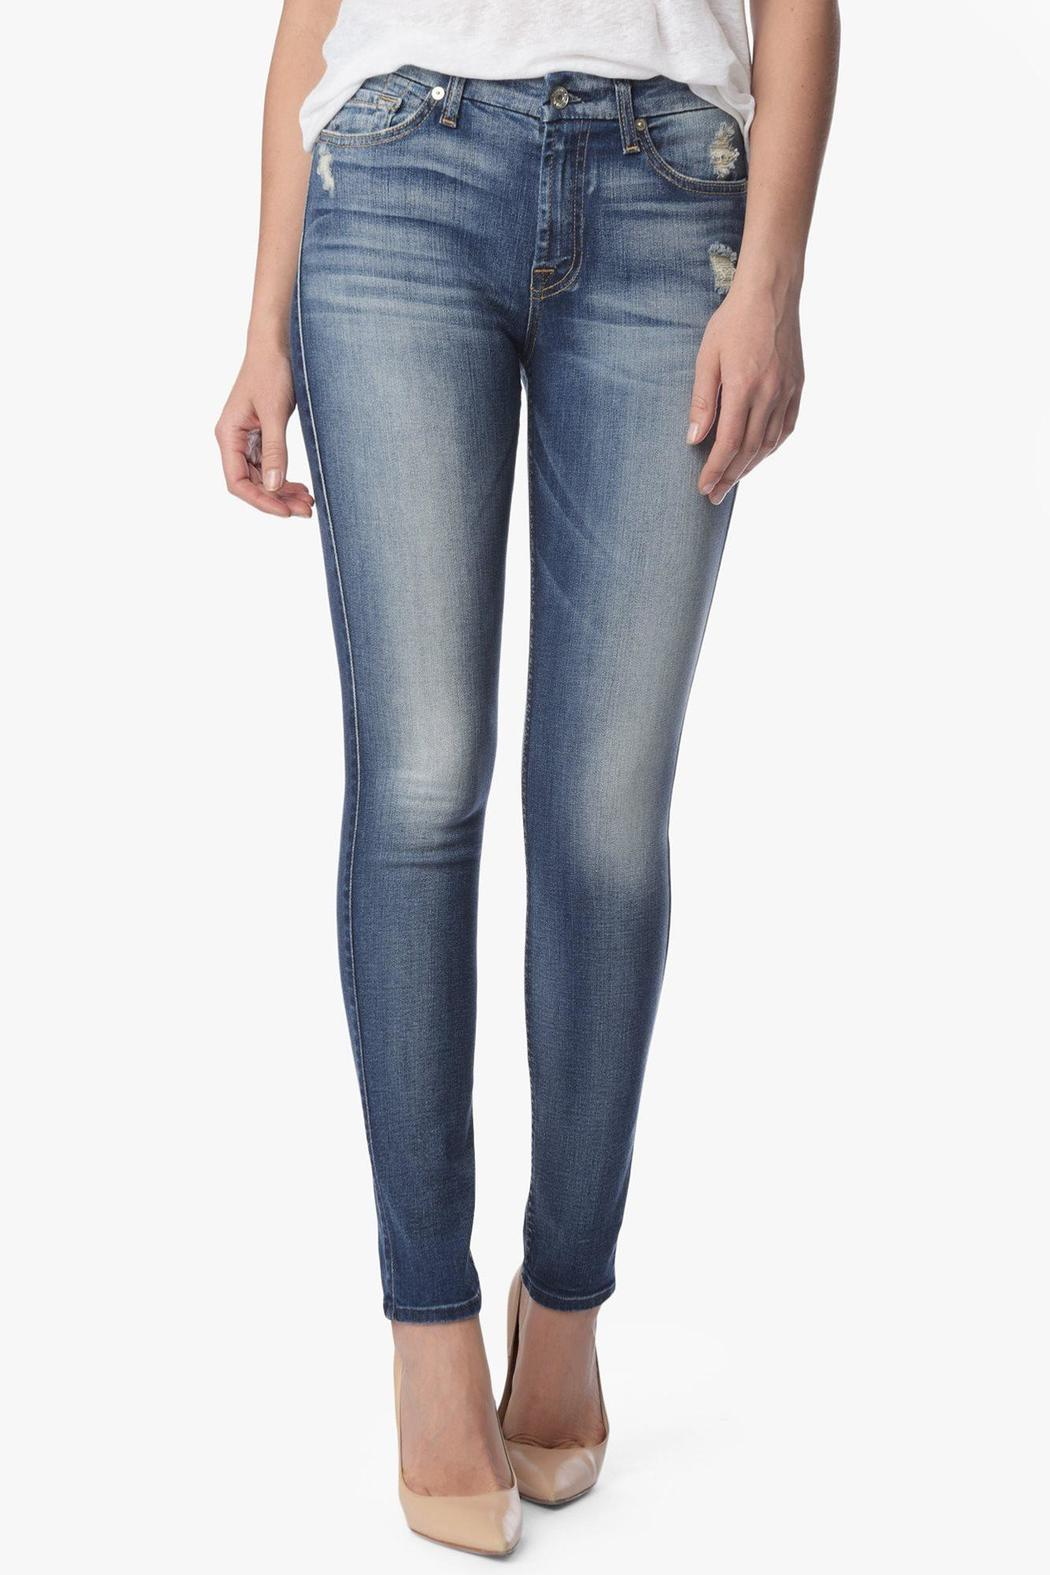 7 For all Mankind Midrise Skinny Authentic-Light - Main Image